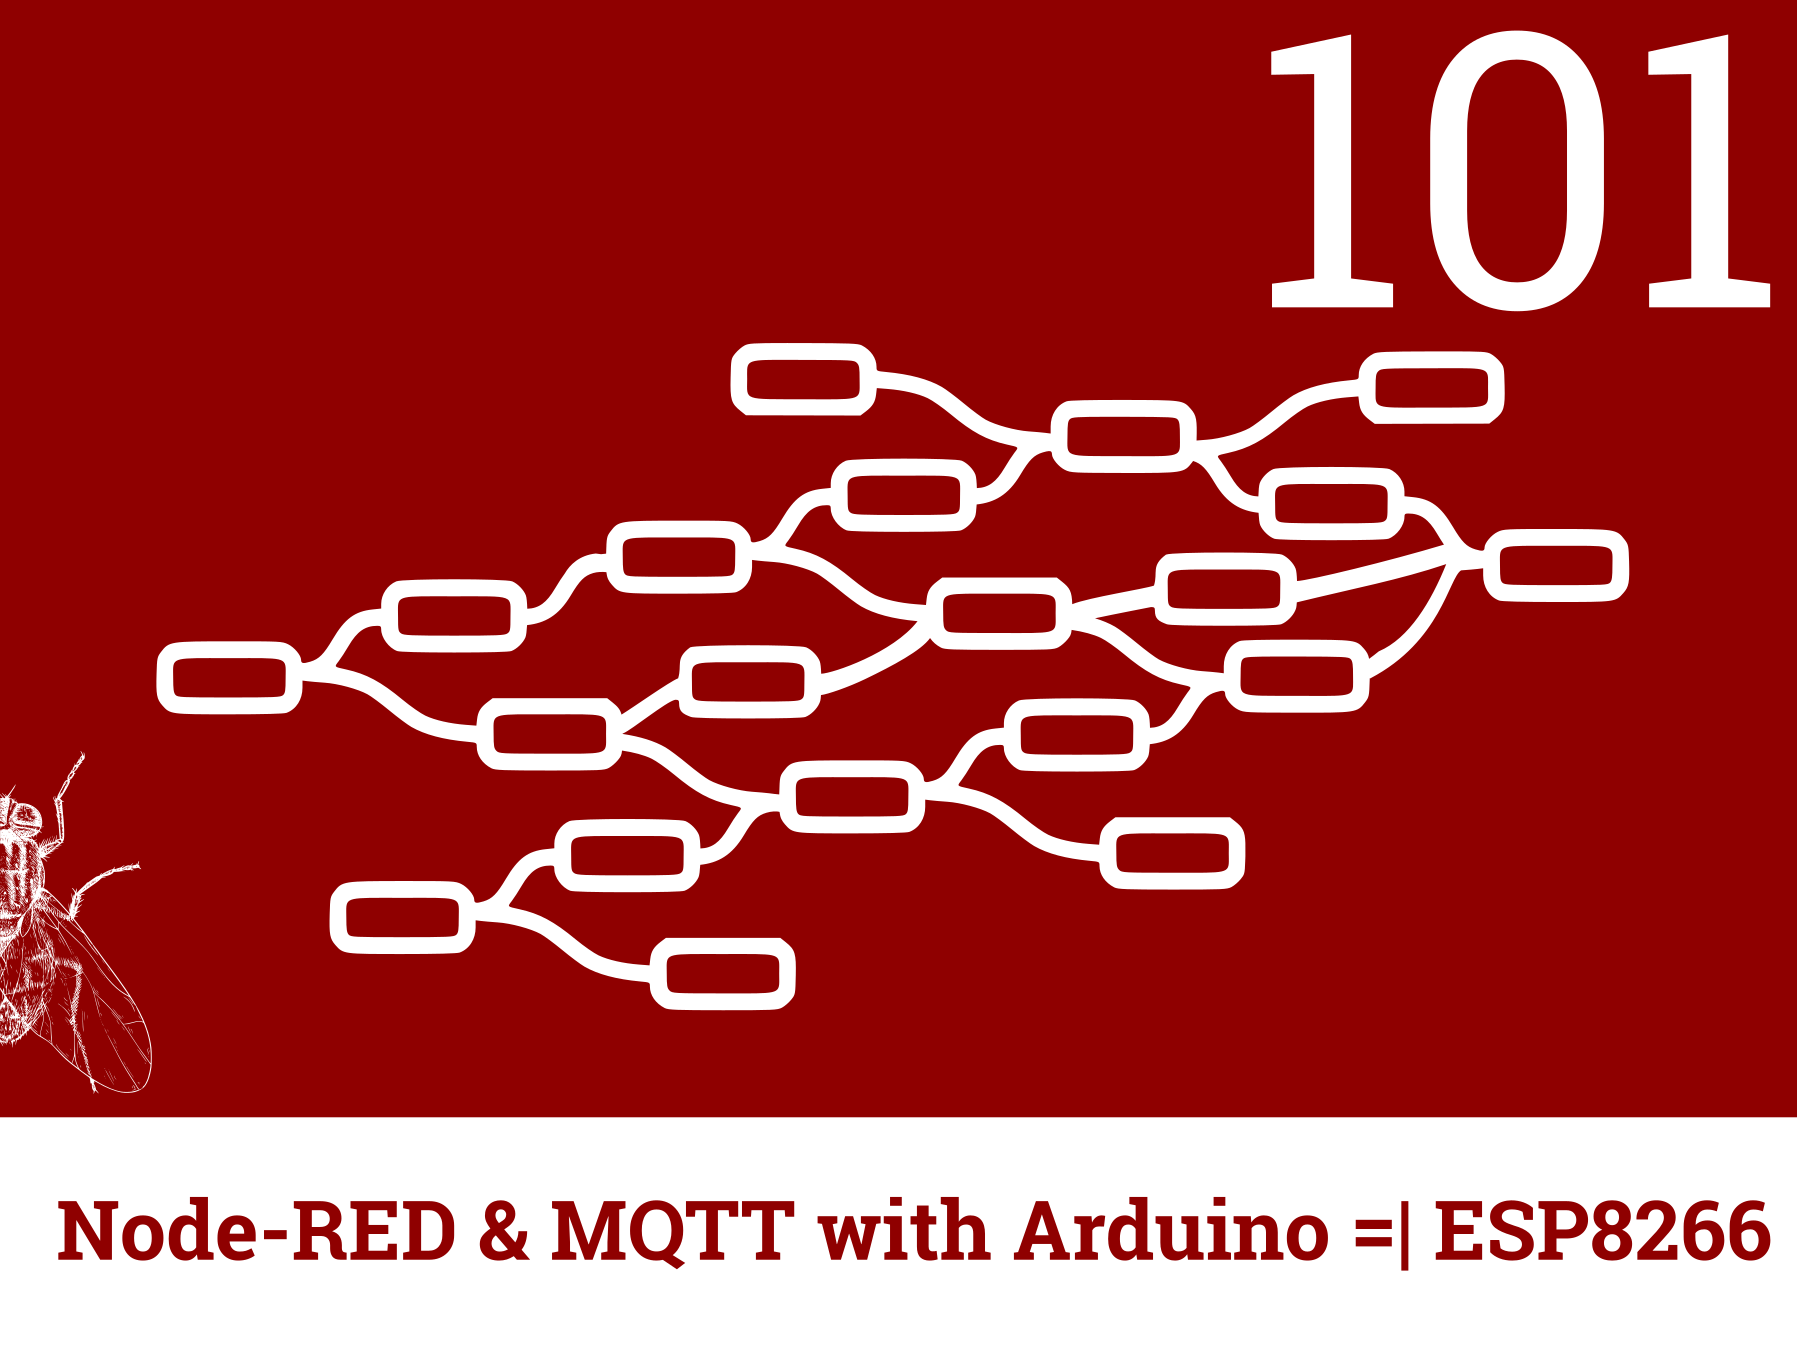 Interfacing Arduino MKR or ESP via MQTT - Node-RED 101